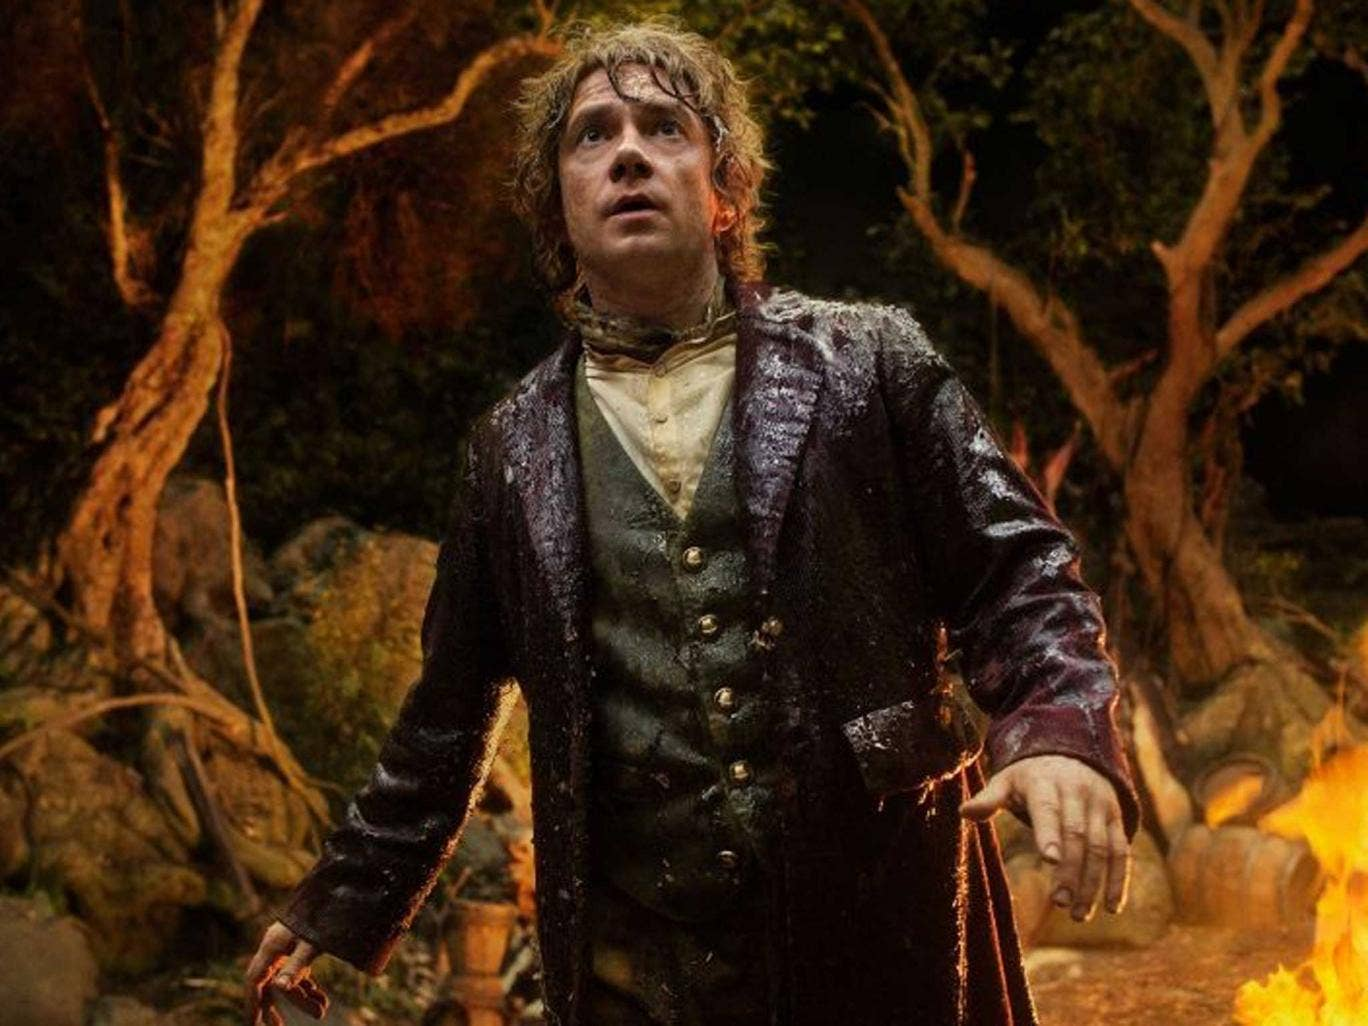 Martin Freeman playing the character in the 'Hobbit' film